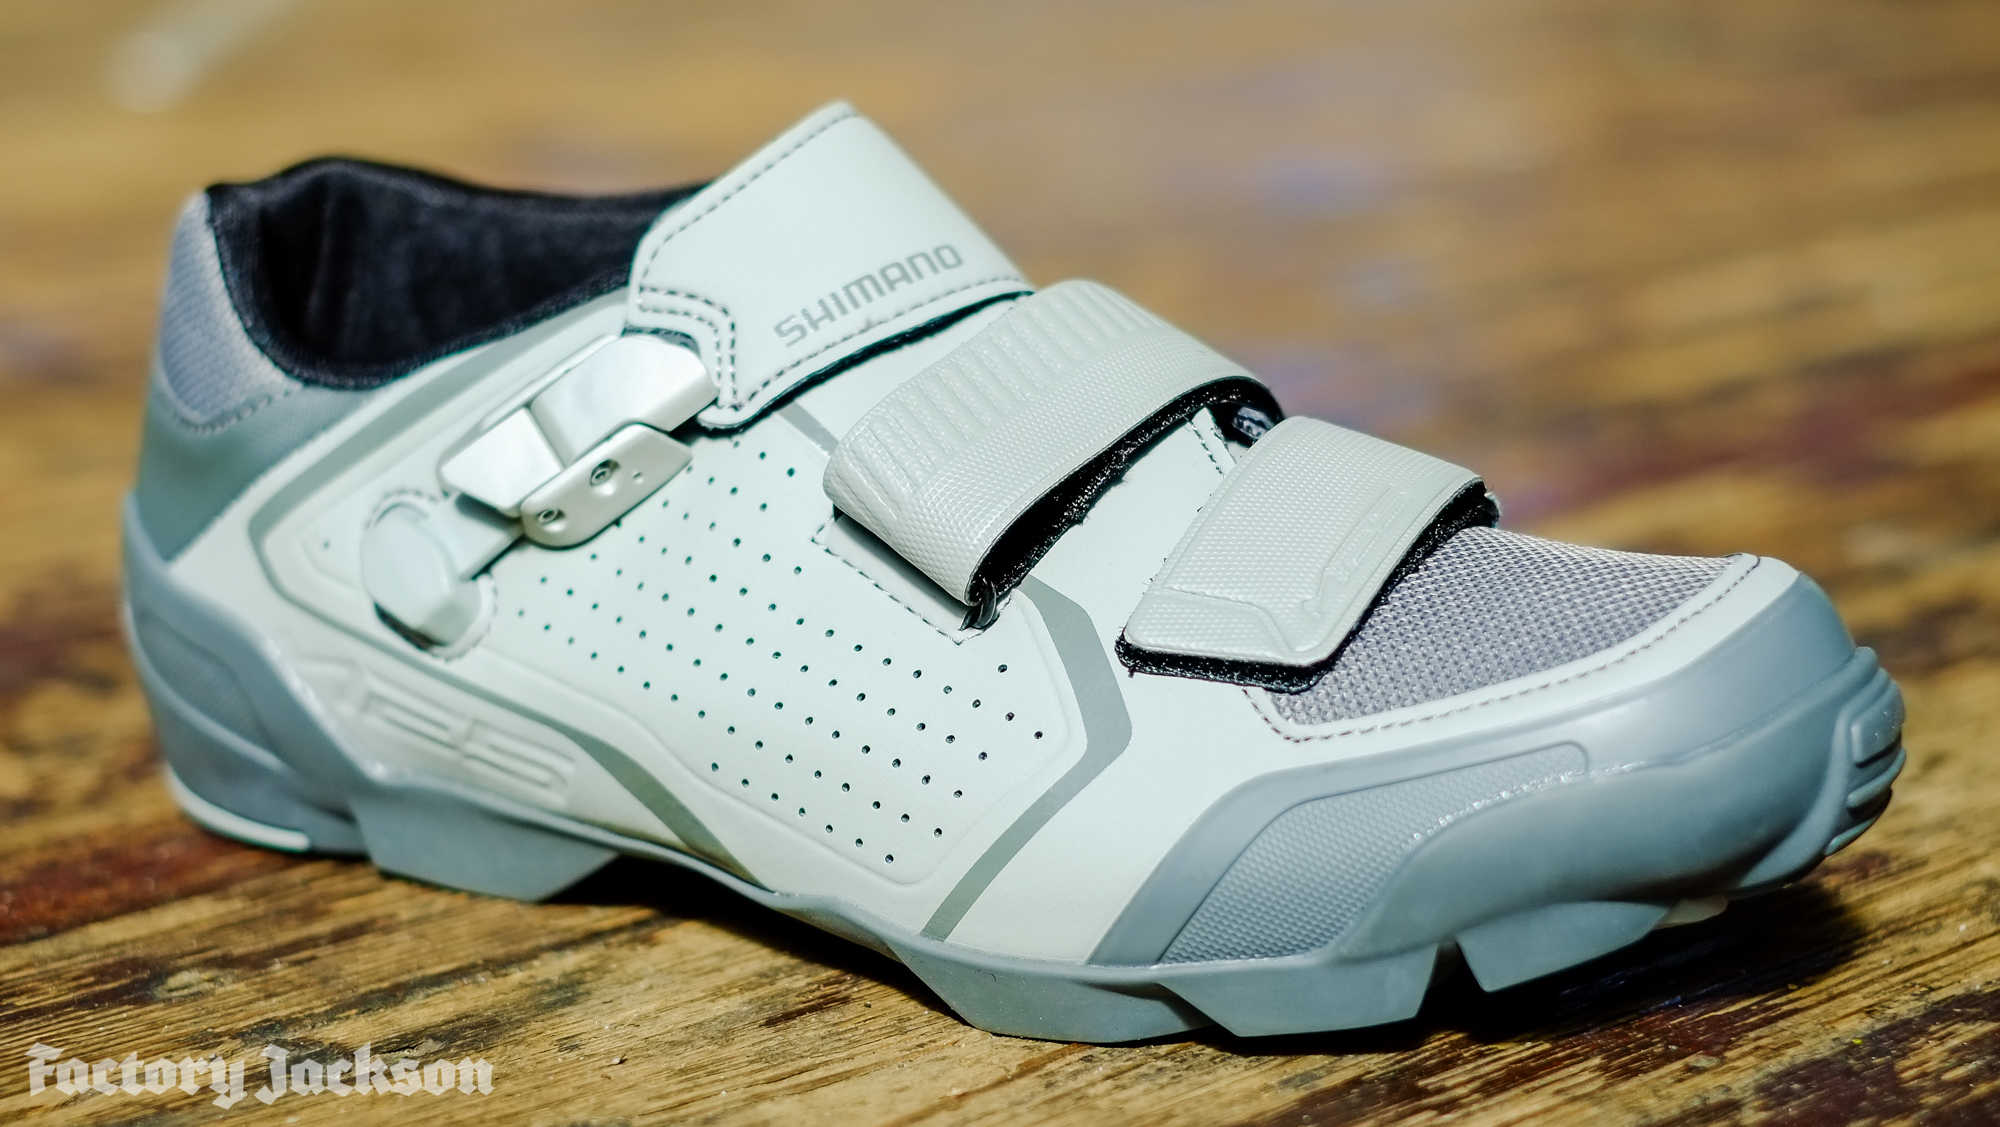 7513962219f Shimano 2017 SPD Shoes | First Look - Factory Jackson Factory Jackson